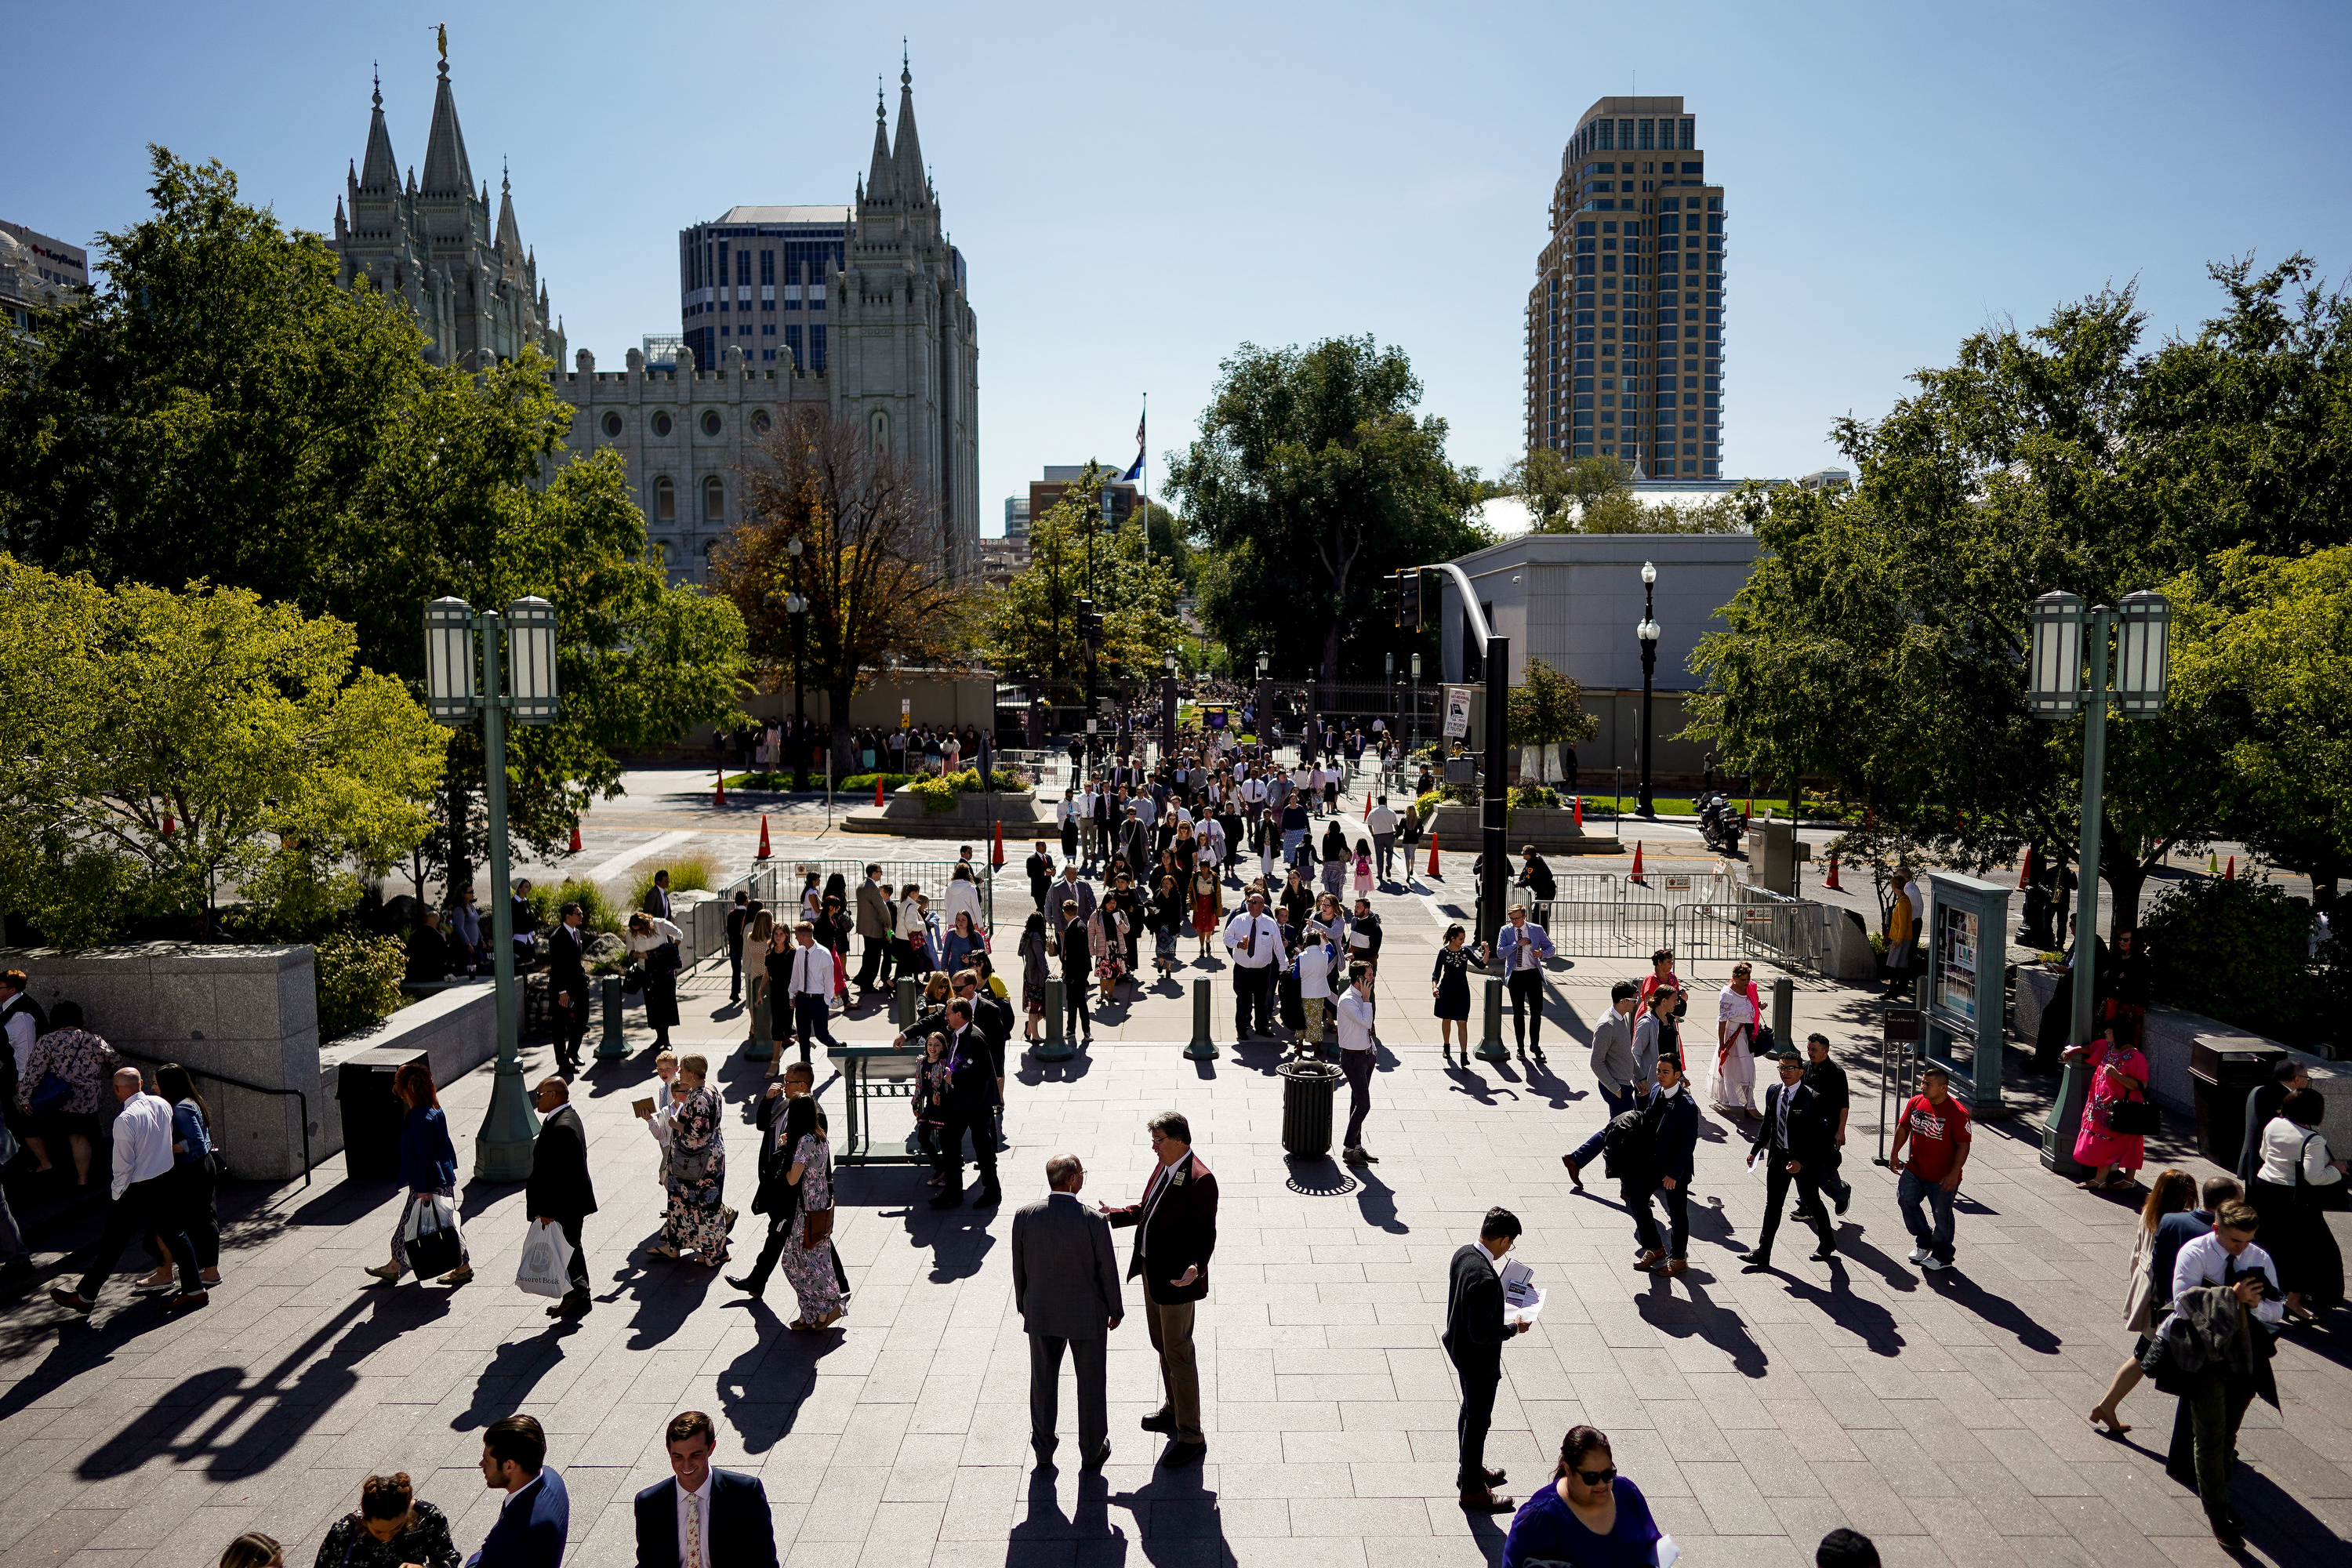 People walk around between Temple Square and the Conference Center between morning and afternoon sessions of the 189th Semiannual General Conference of The Church of Jesus Christ of Latter-day Saints in the Conference Center in Salt Lake City on Saturday, Oct. 5, 2019.